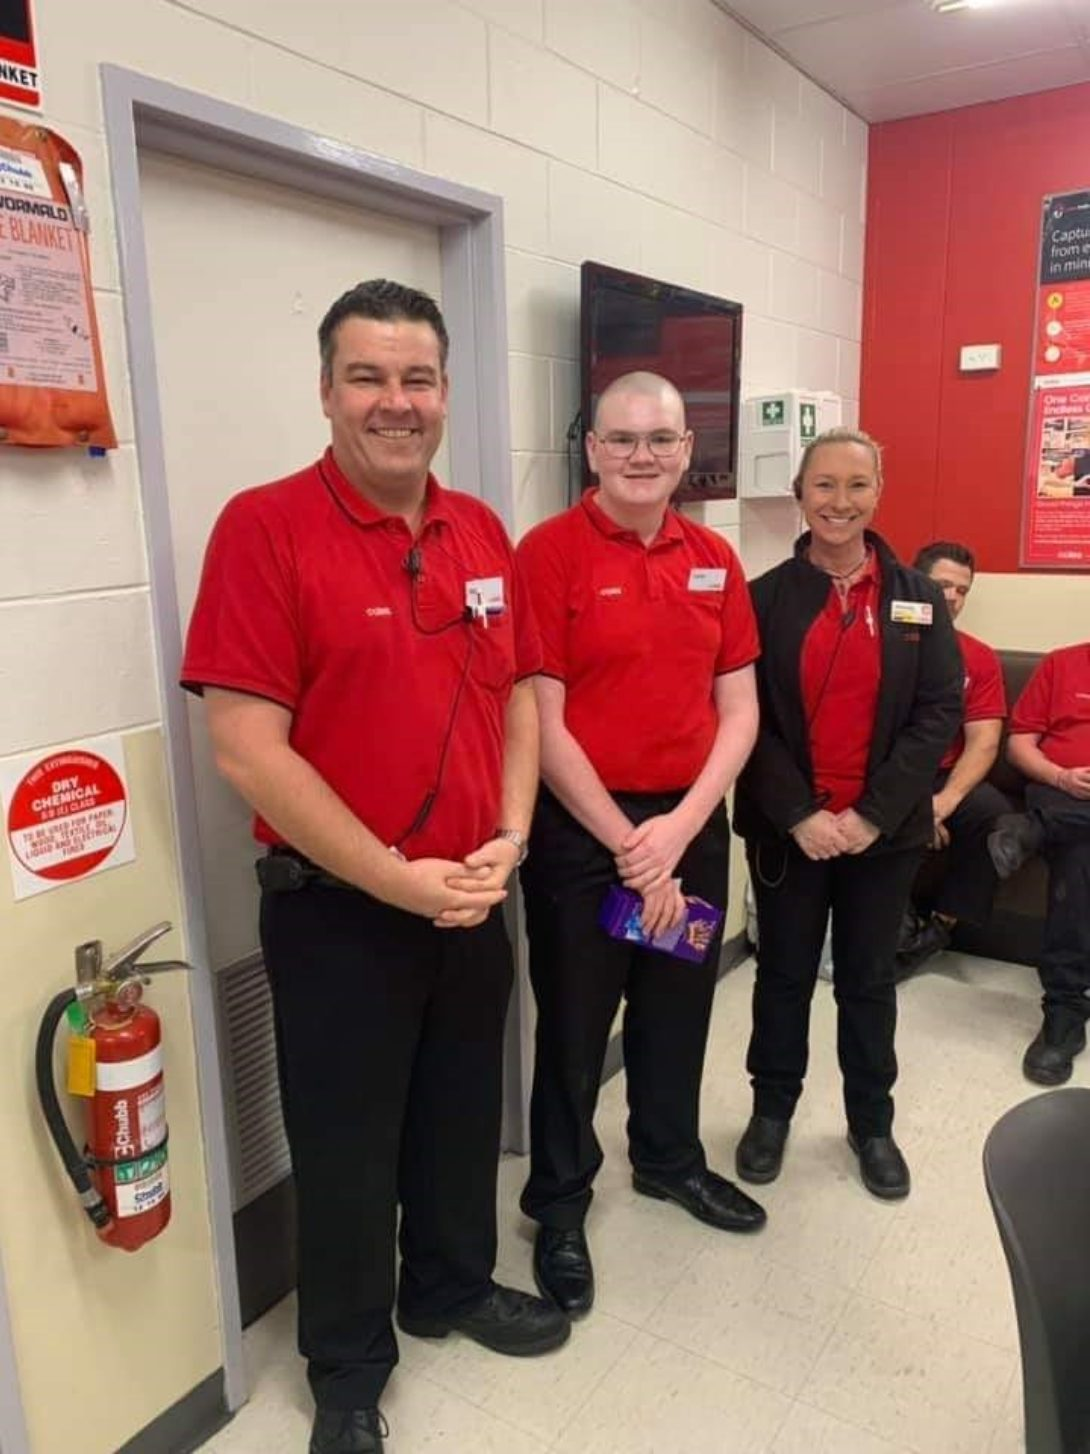 Coles employee of the month, and Castle participant, Caleb, with his employer and supervisor.